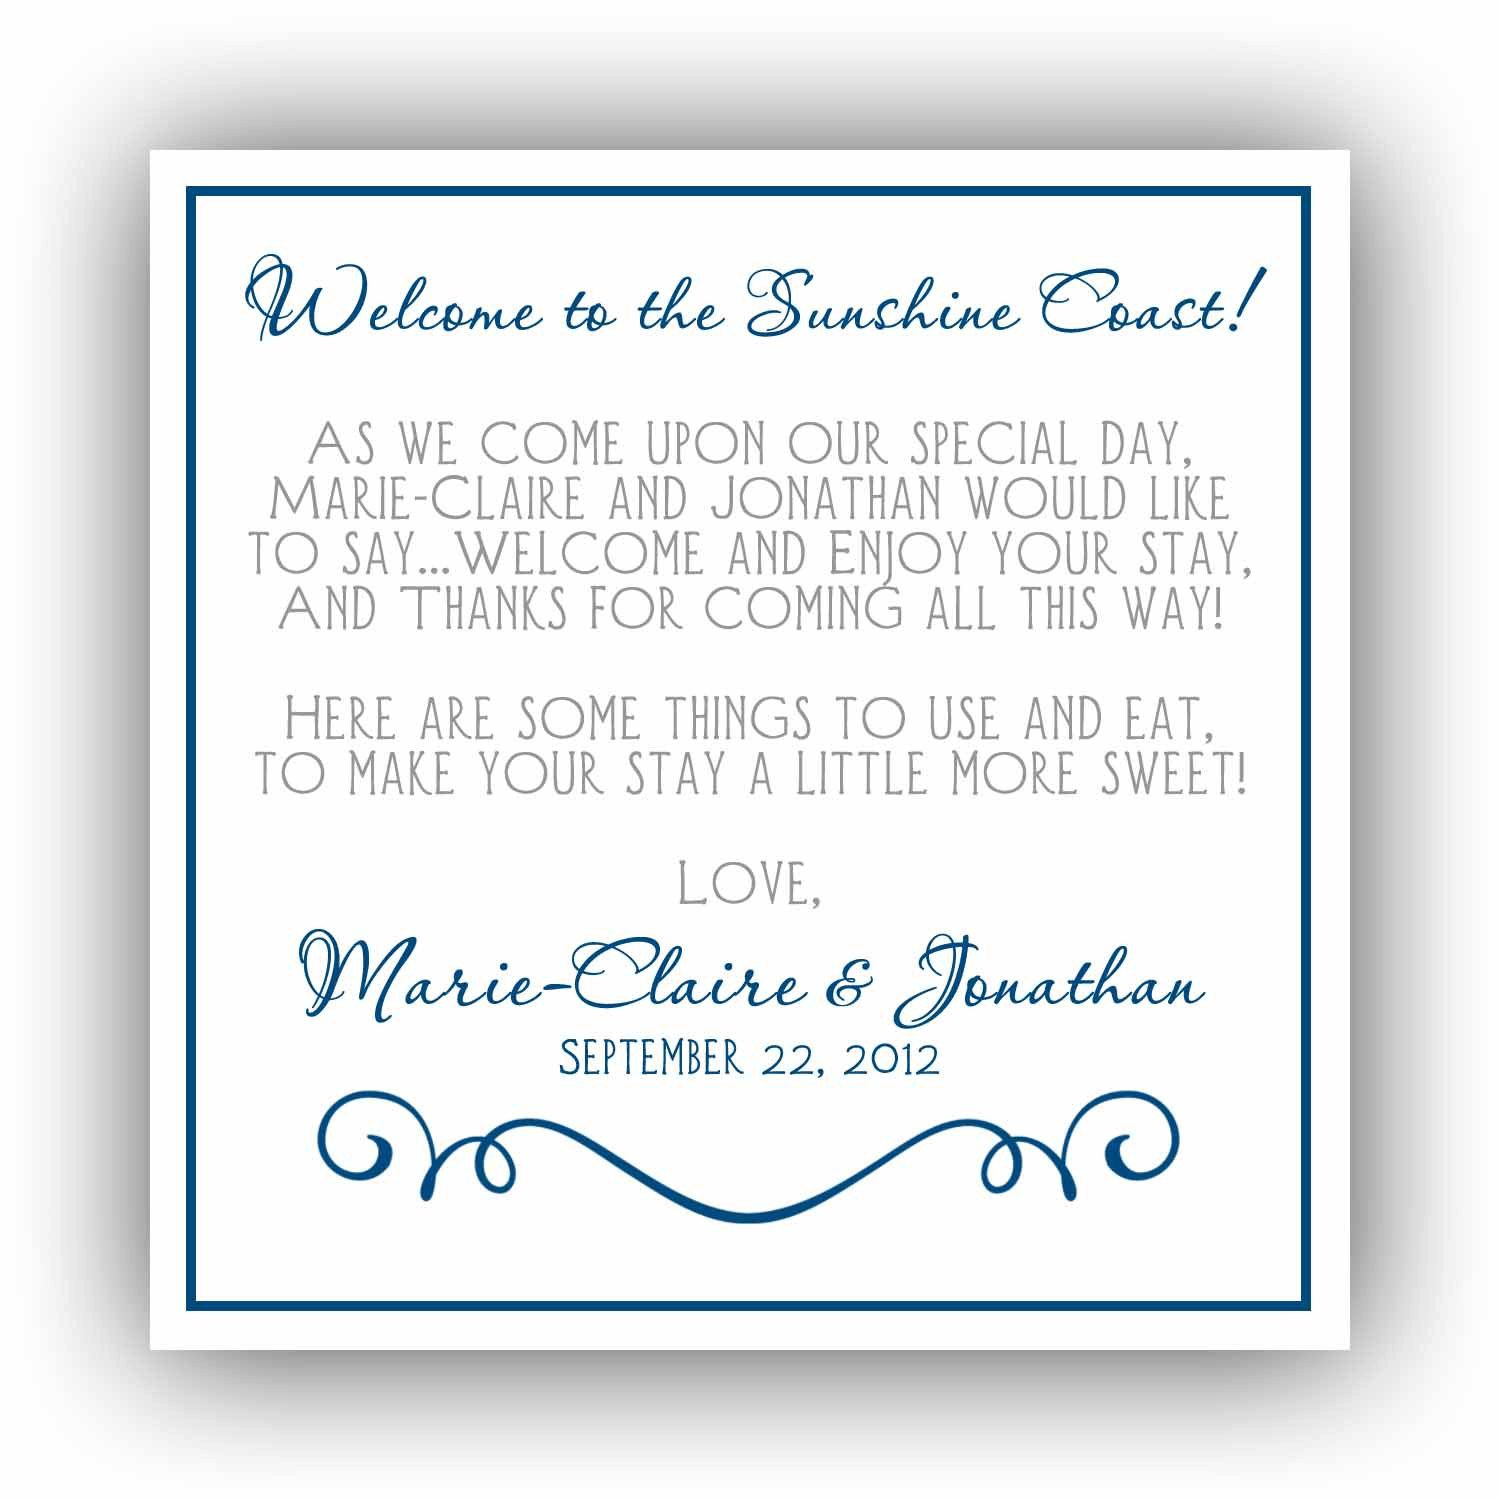 Printable Hotel Welcome Bag Tags- Weddings, Special Events, Showers ...